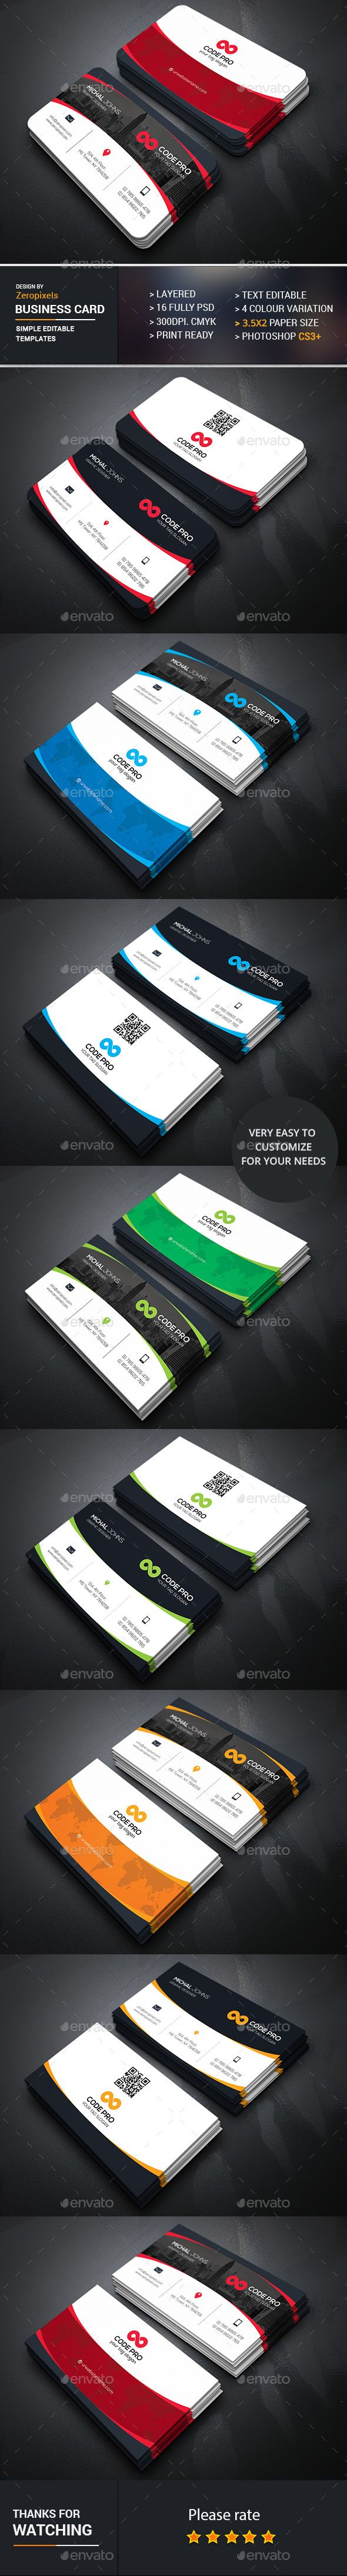 741 best design business cards images on pinterest